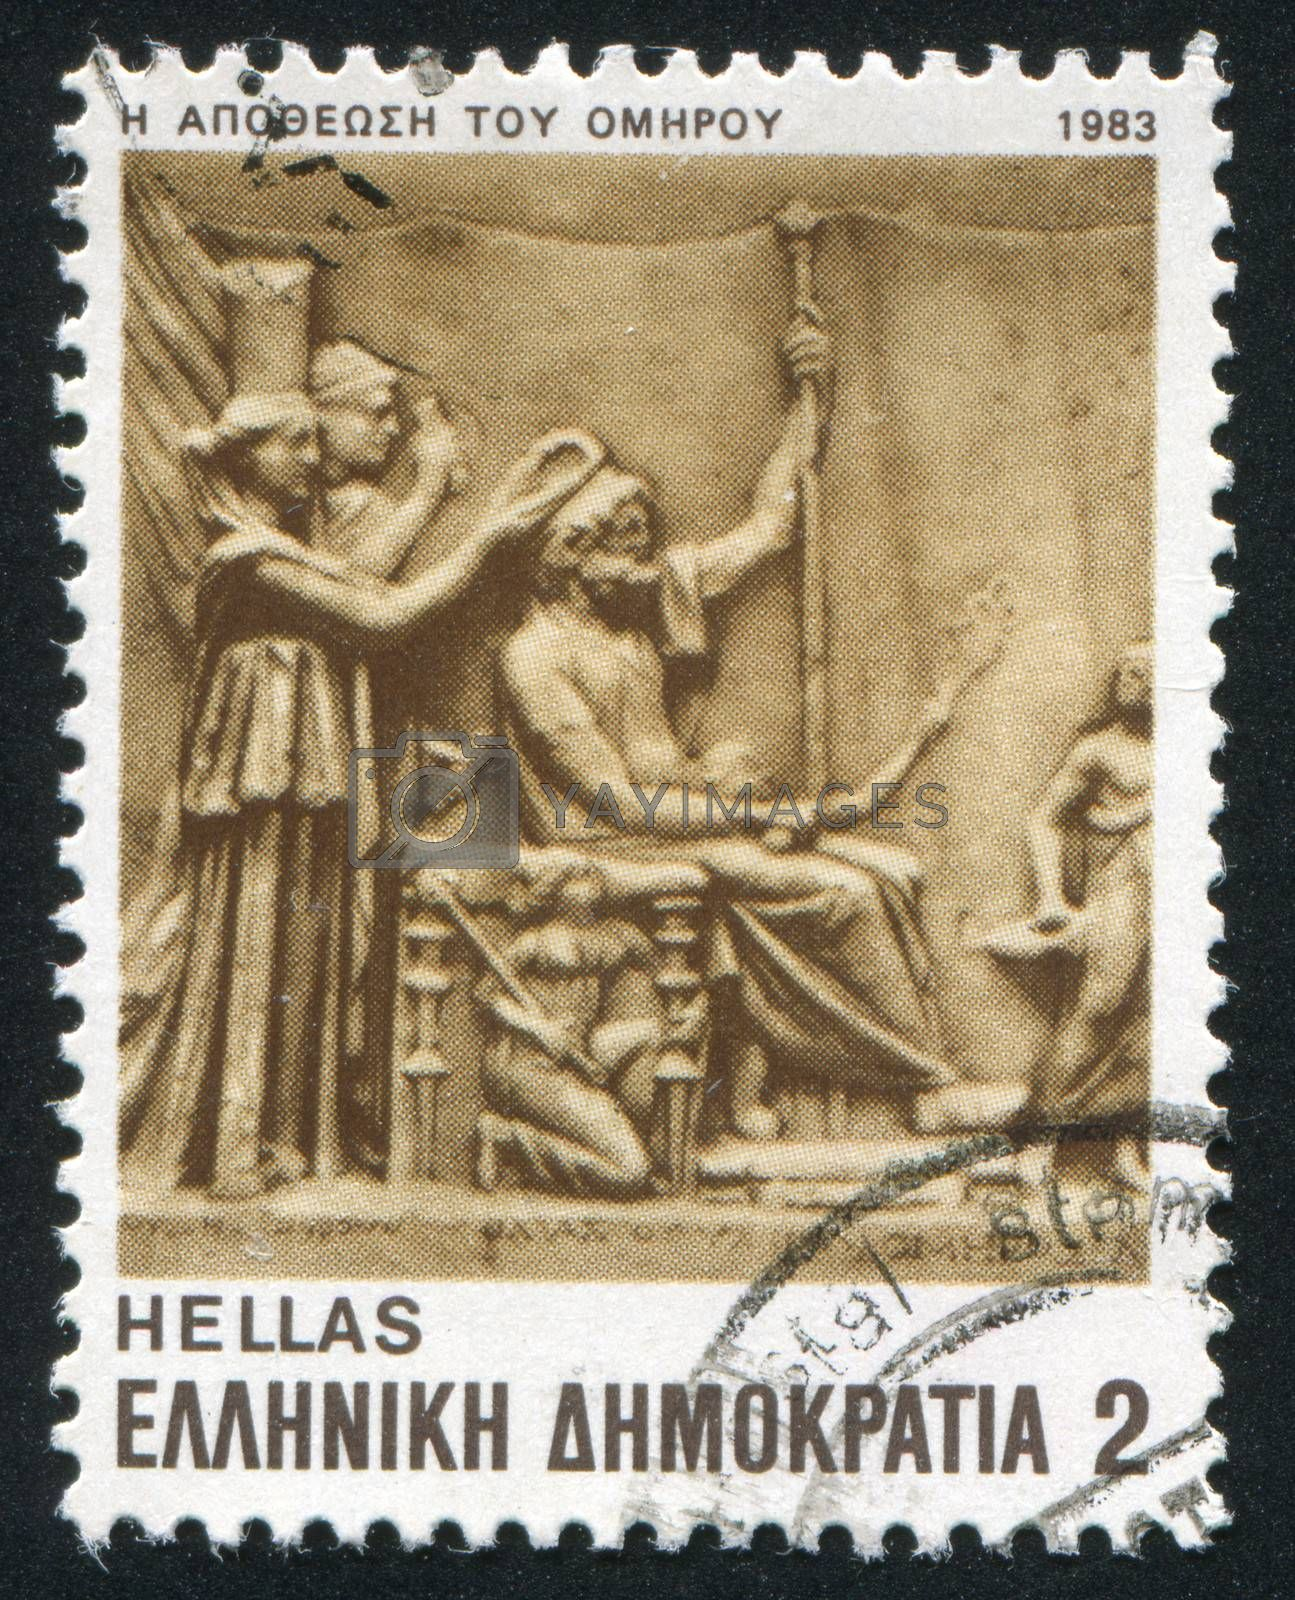 GREECE - CIRCA 1983: stamp printed by Greece, shows the deification of Homer, circa 1983